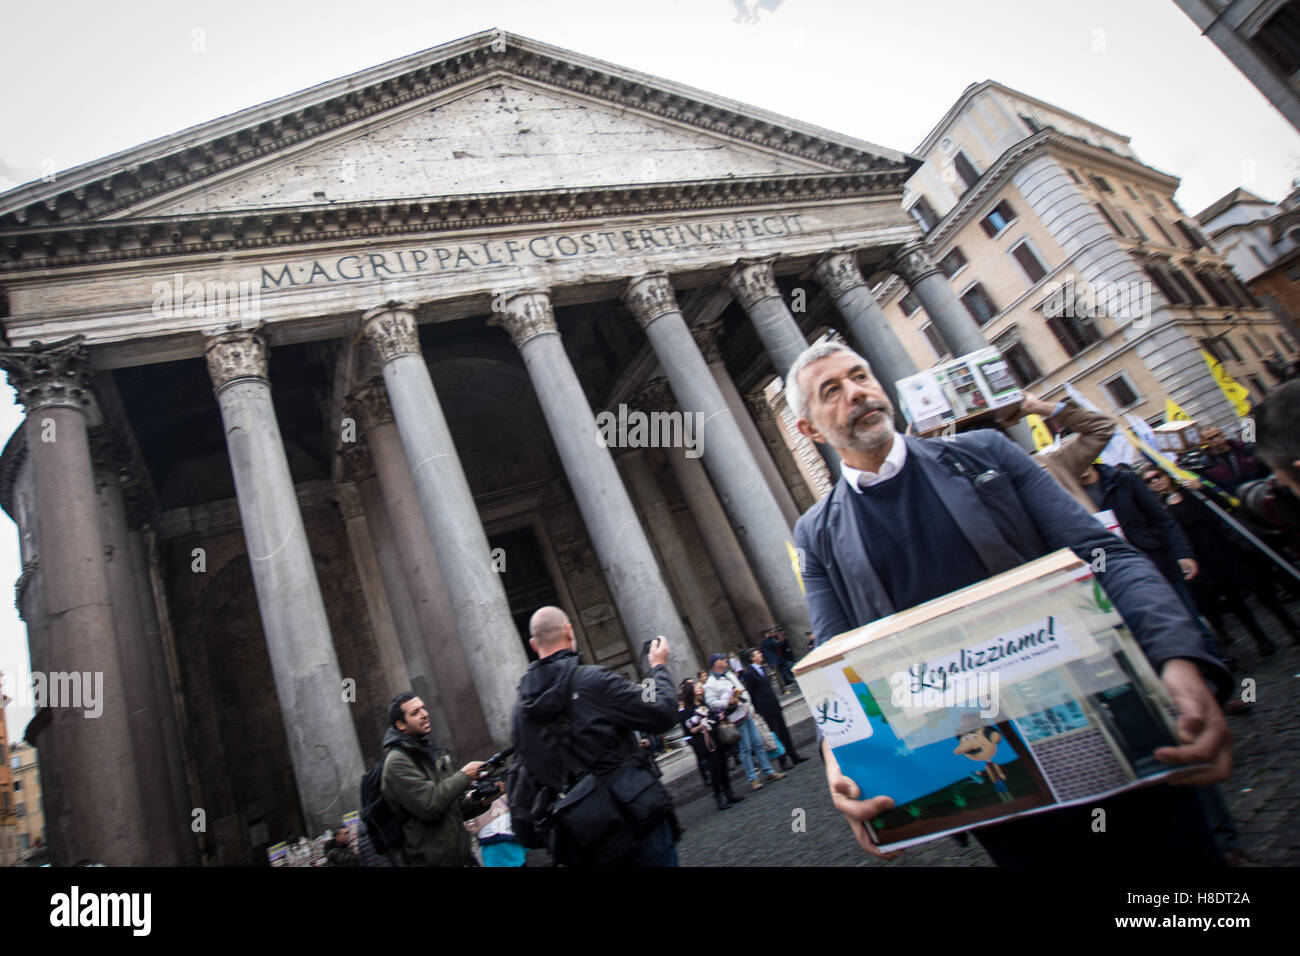 Rome, Italy. 11th November, 2016. Handover to the Bill to legalize cannabis, Italian radicals and other associations - Stock Image